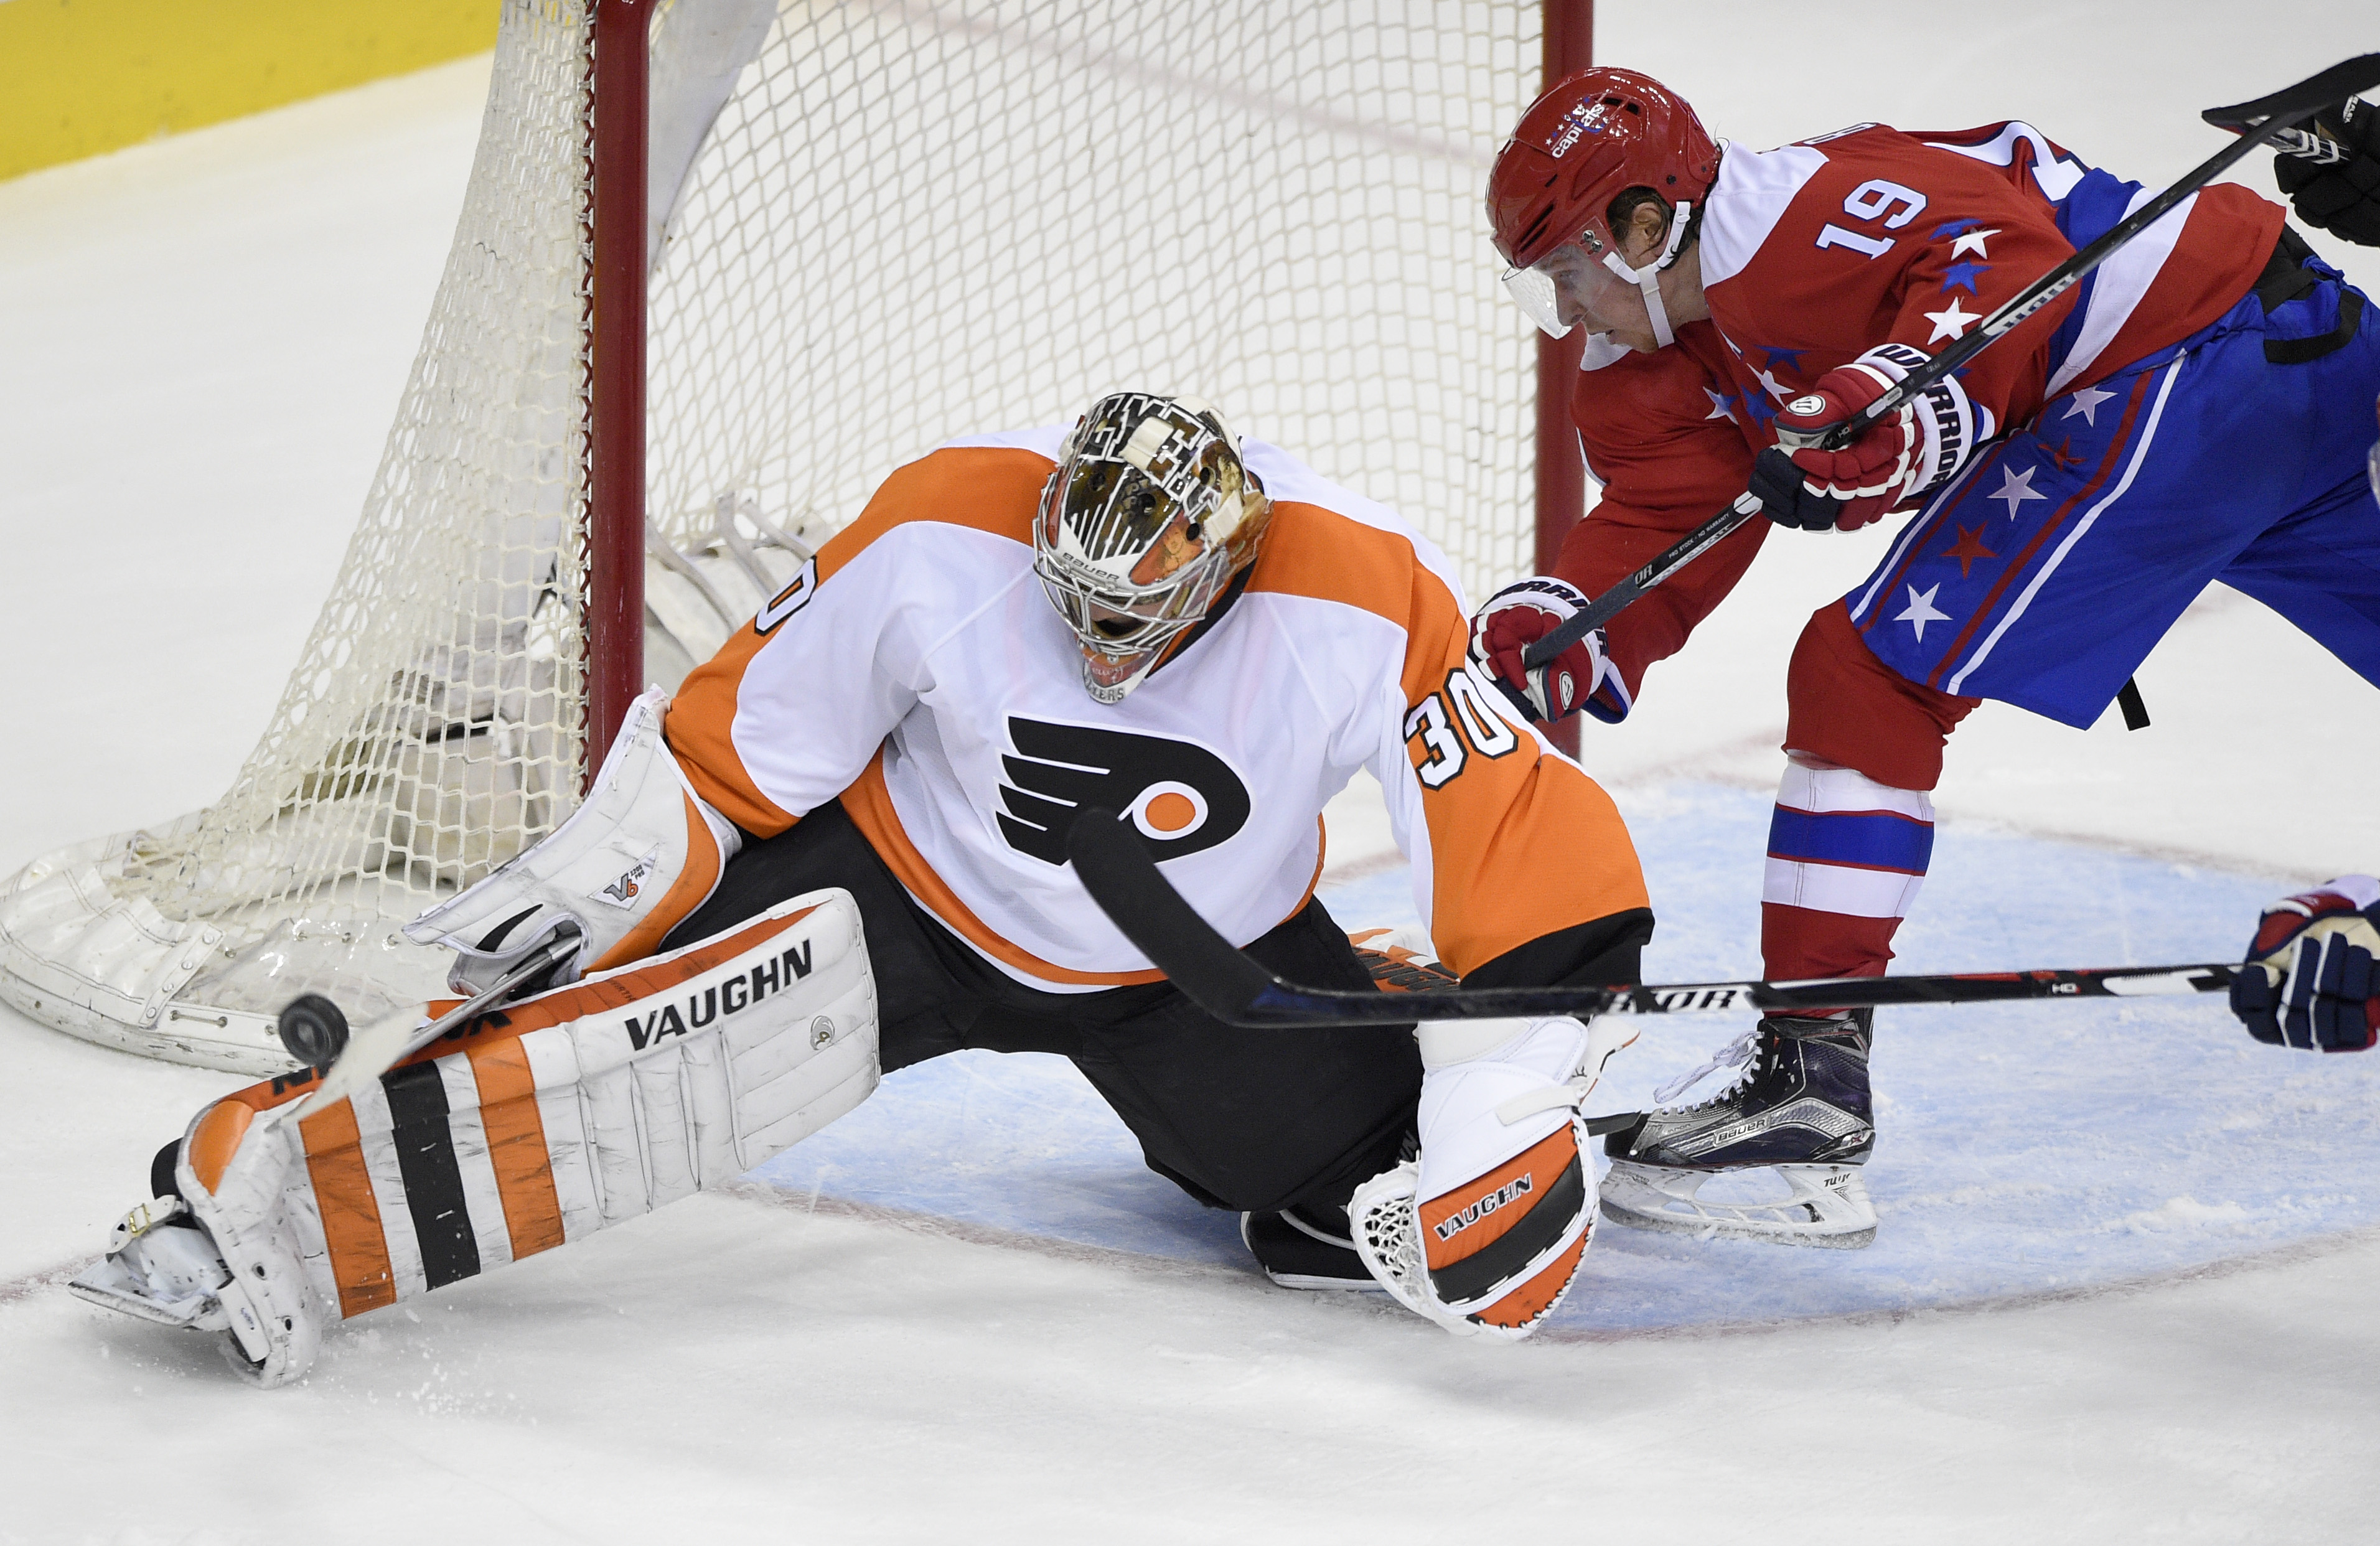 Philadelphia Flyers goalie Michal Neuvirth (30), of the Czech Republic, stops the puck against Washington Capitals center Nicklas Backstrom (19), of Sweden, during the third period of an NHL hockey game, Wednesday, Jan. 27, 2016, in Washington. The Flyers